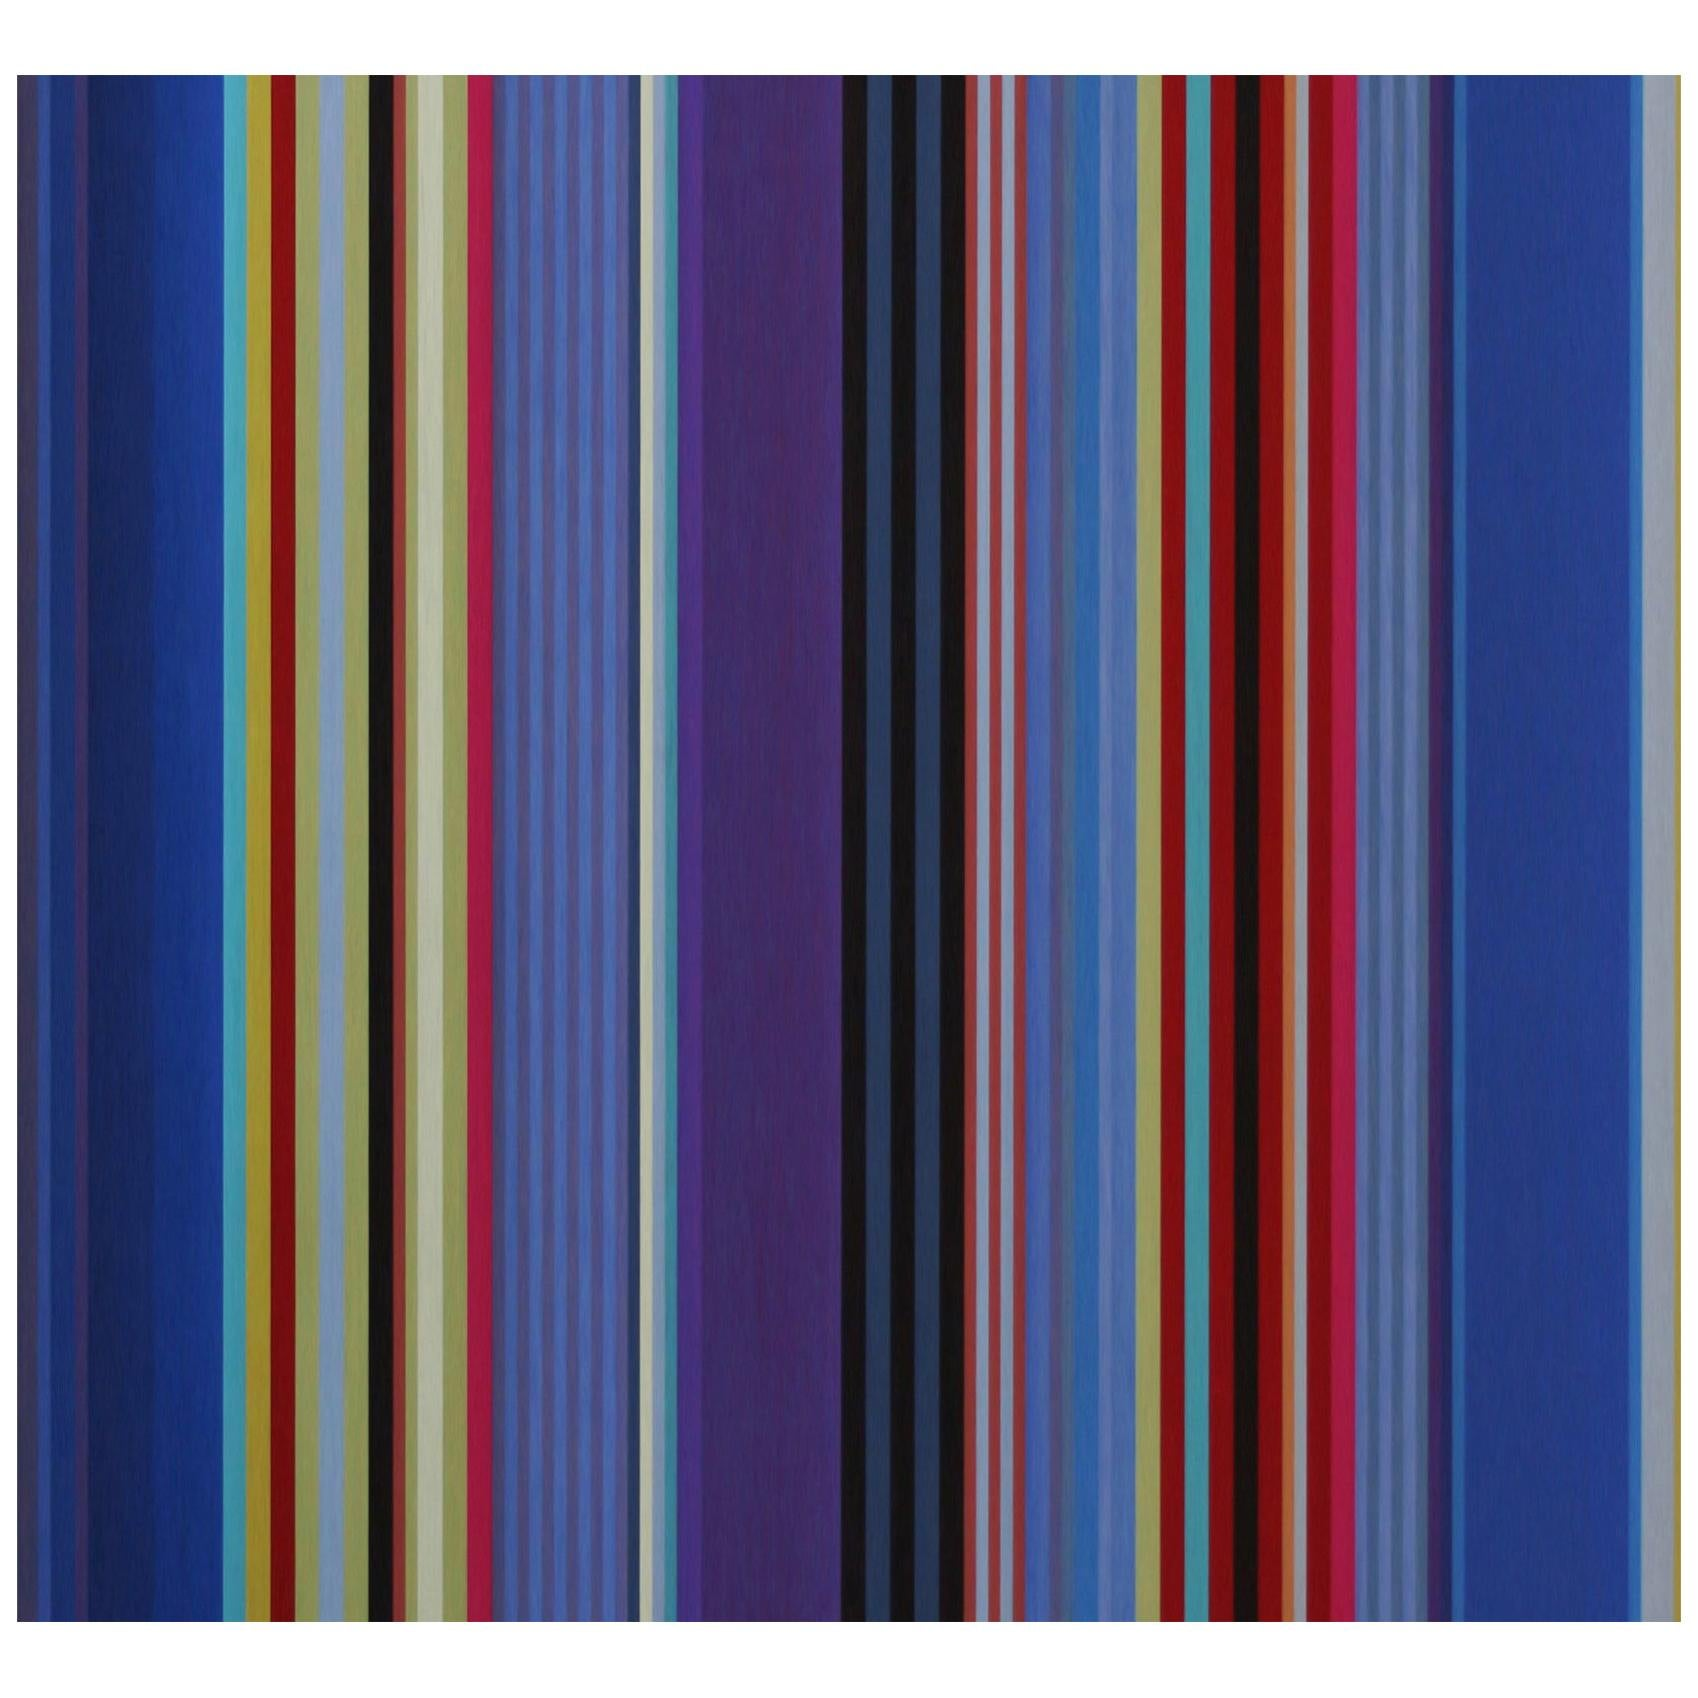 Designtex Clarkenwell Royal Wool Textile, Wallace and Sewell, UK, Cooper Hewitt